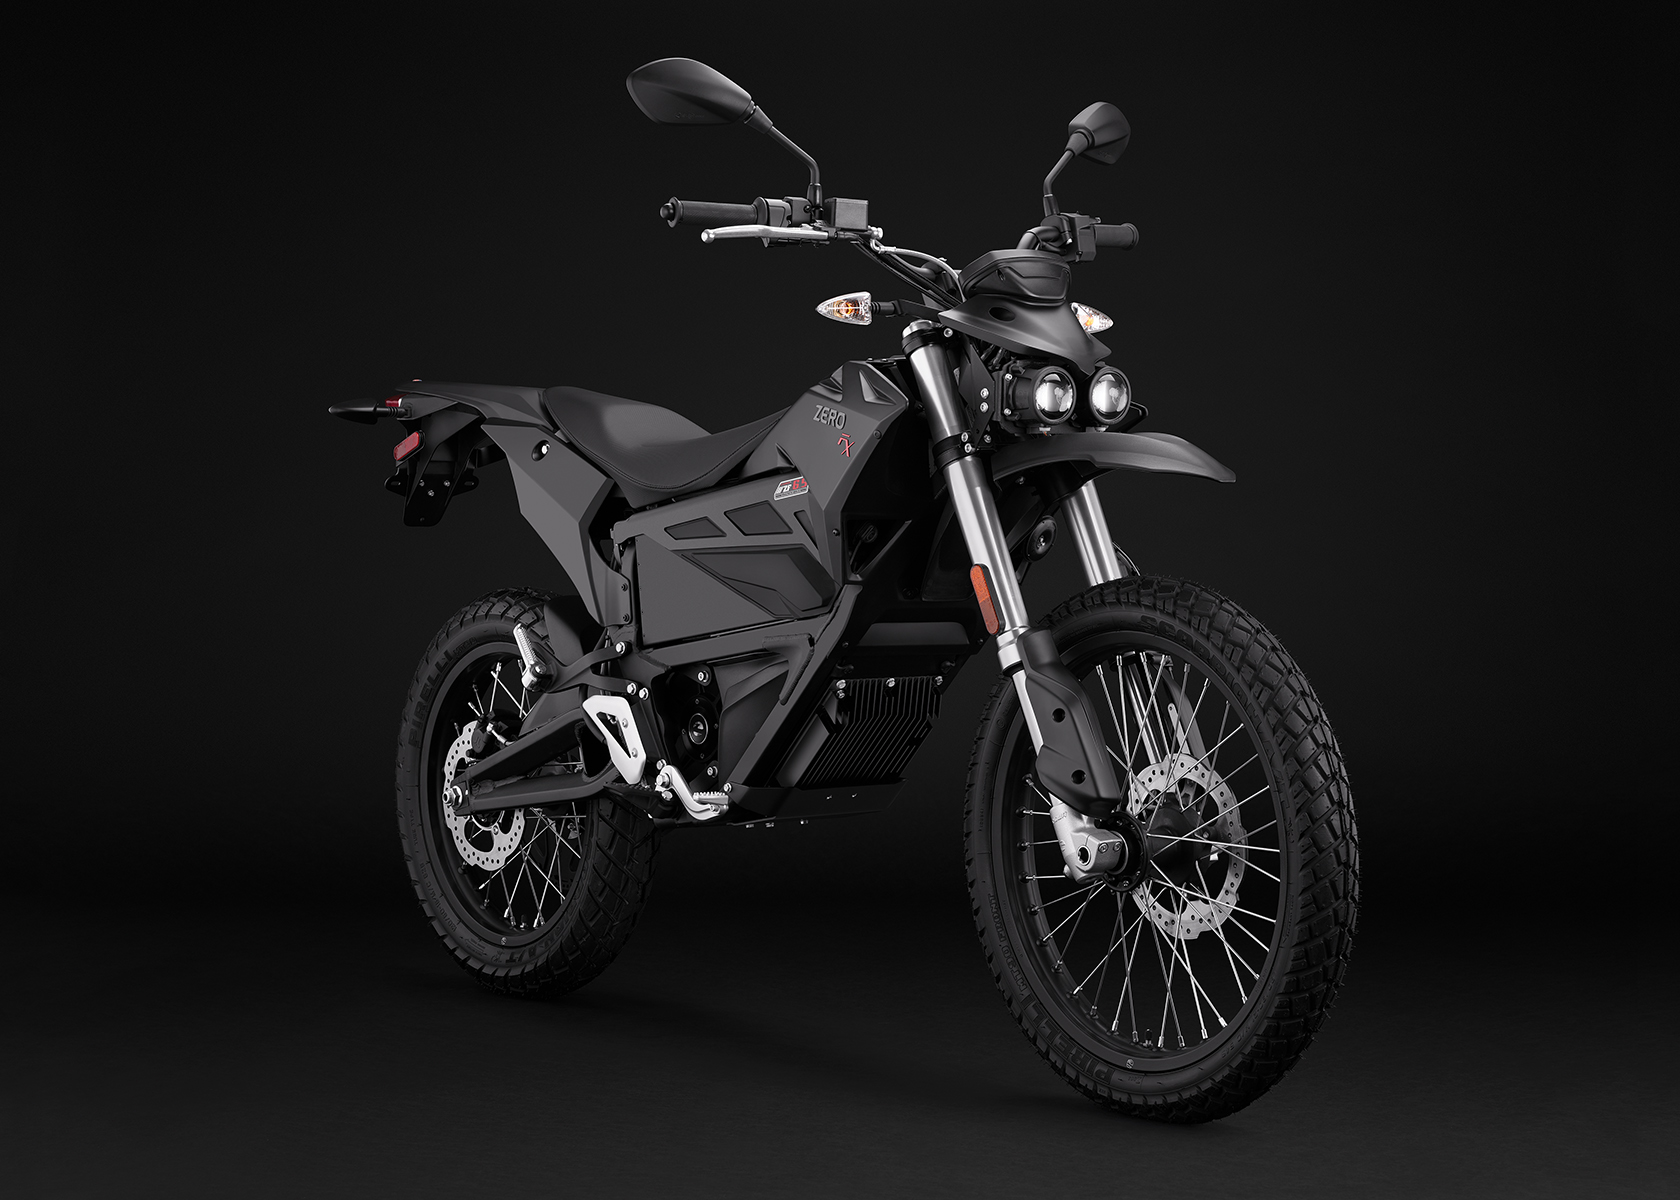 2017 Zero FX Electric Motorcycle: Black Angle Right